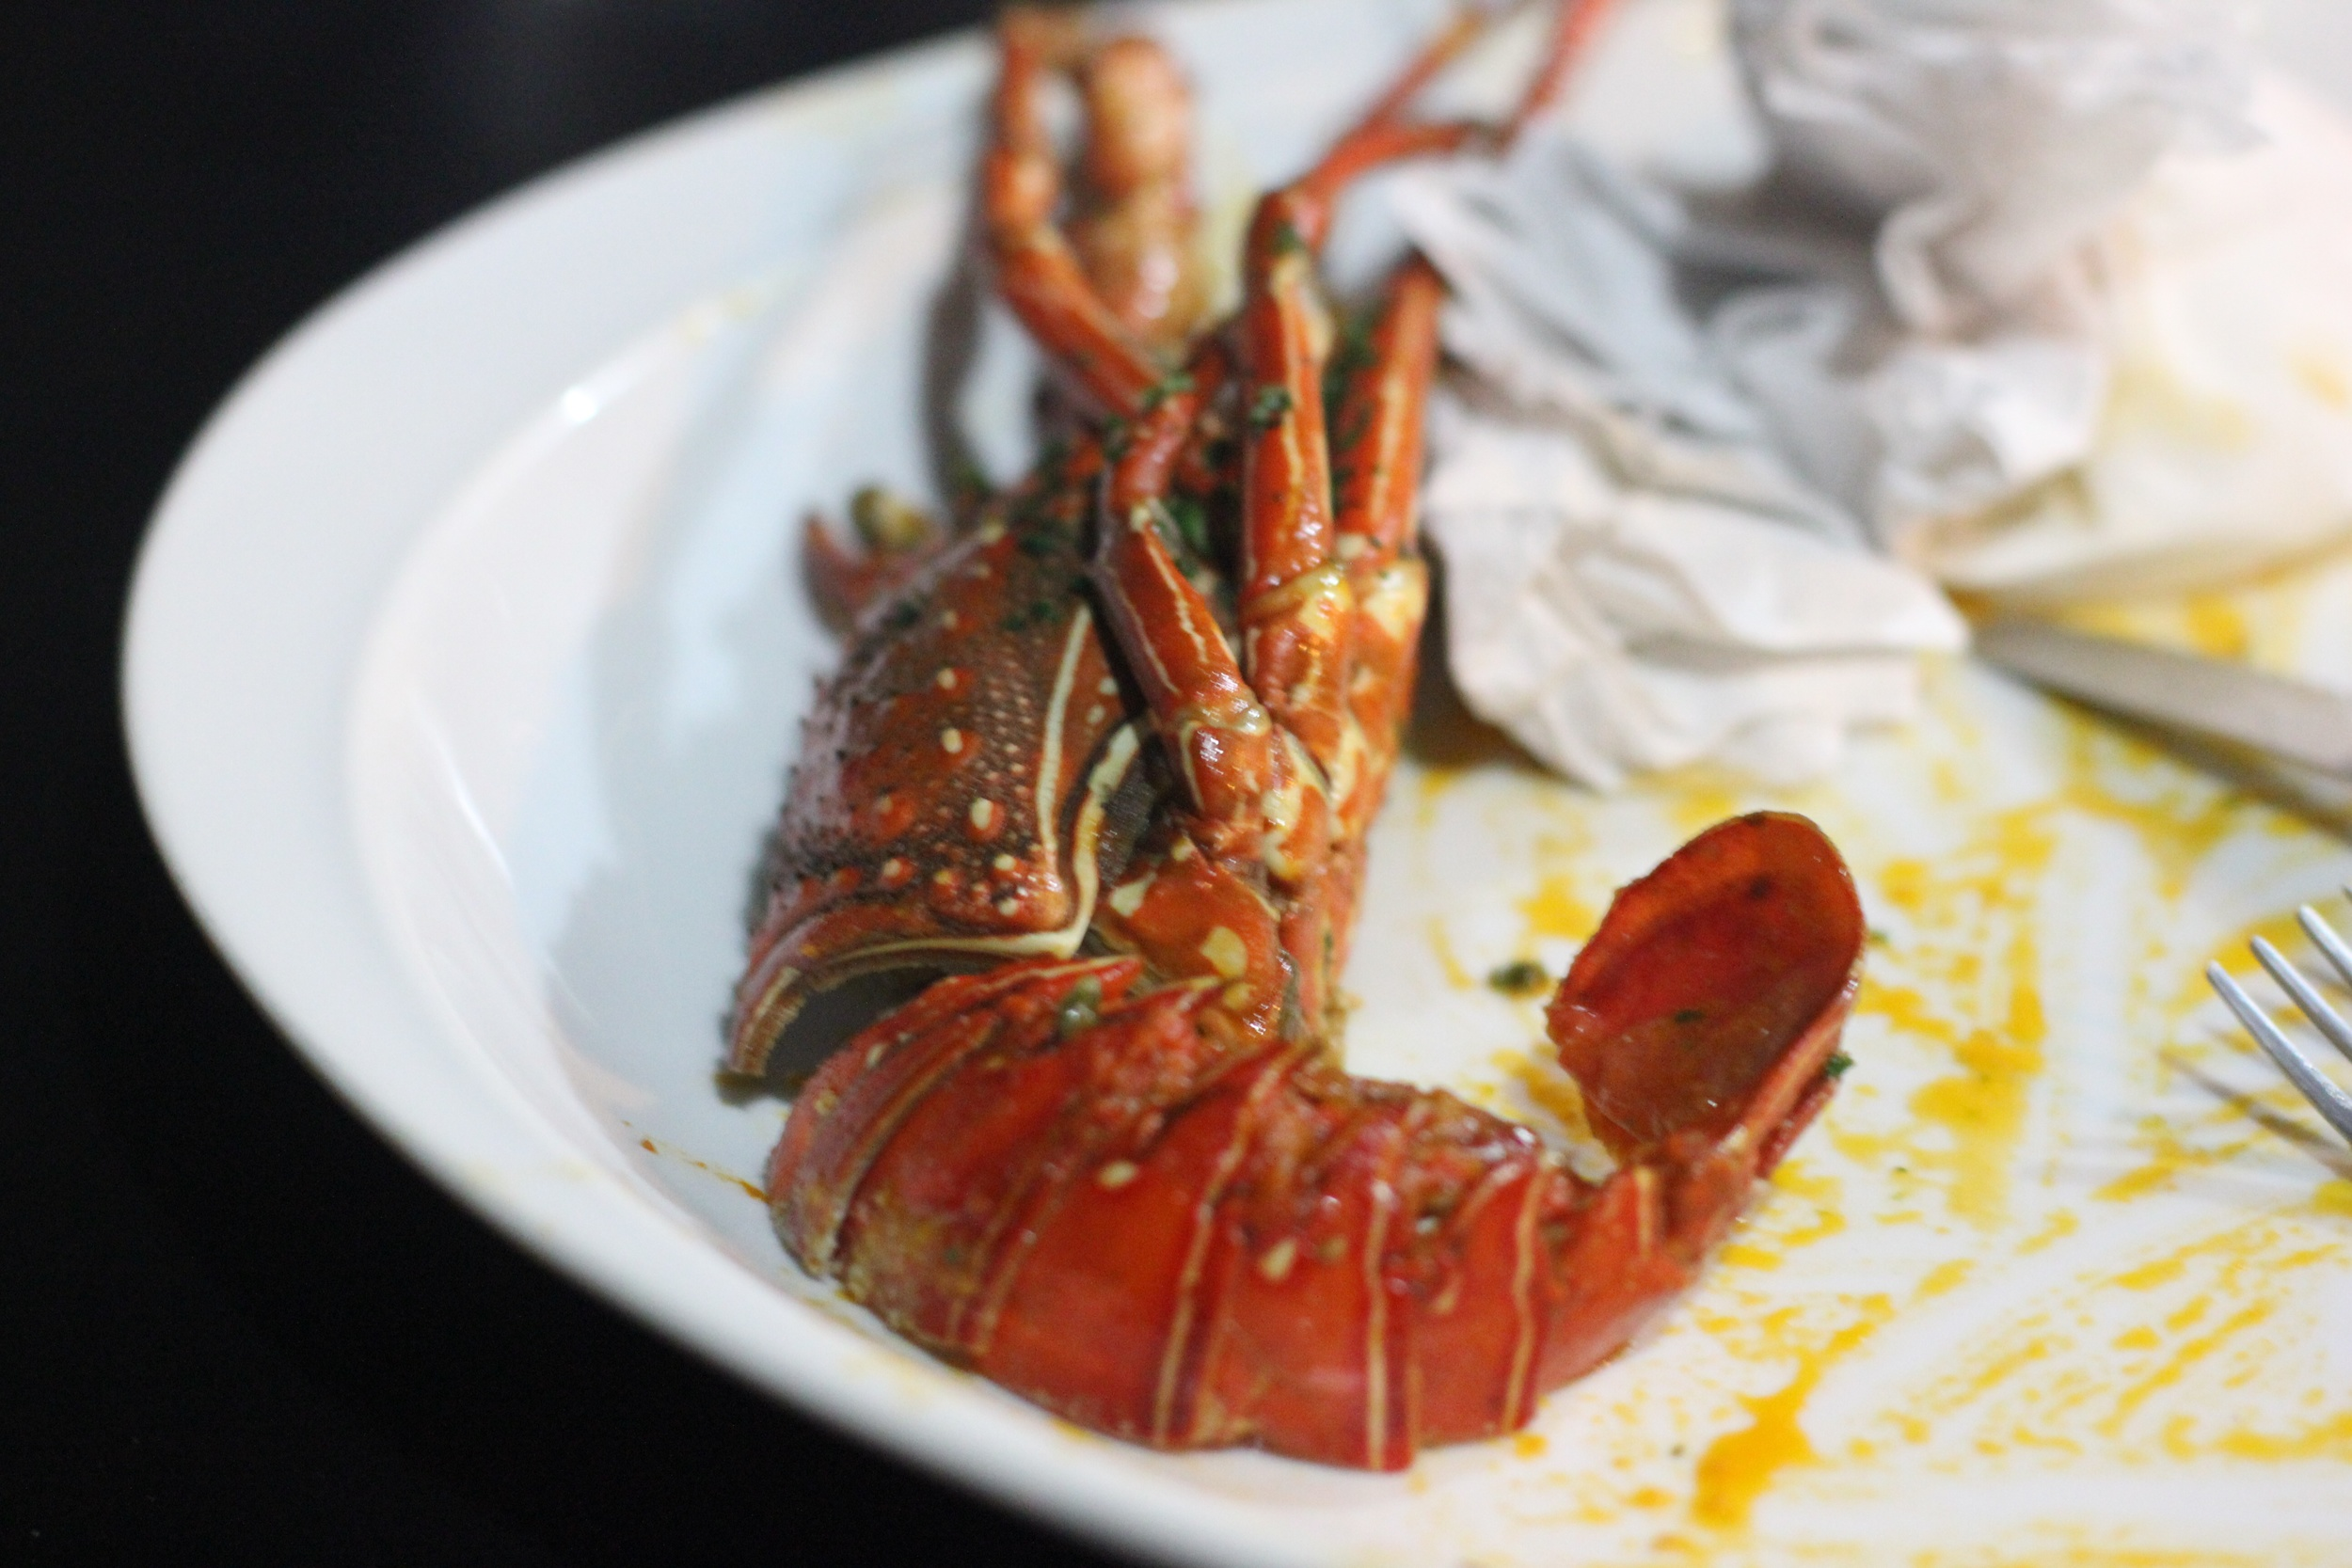 tagliatelle con lobster - something I can image in to have everyday